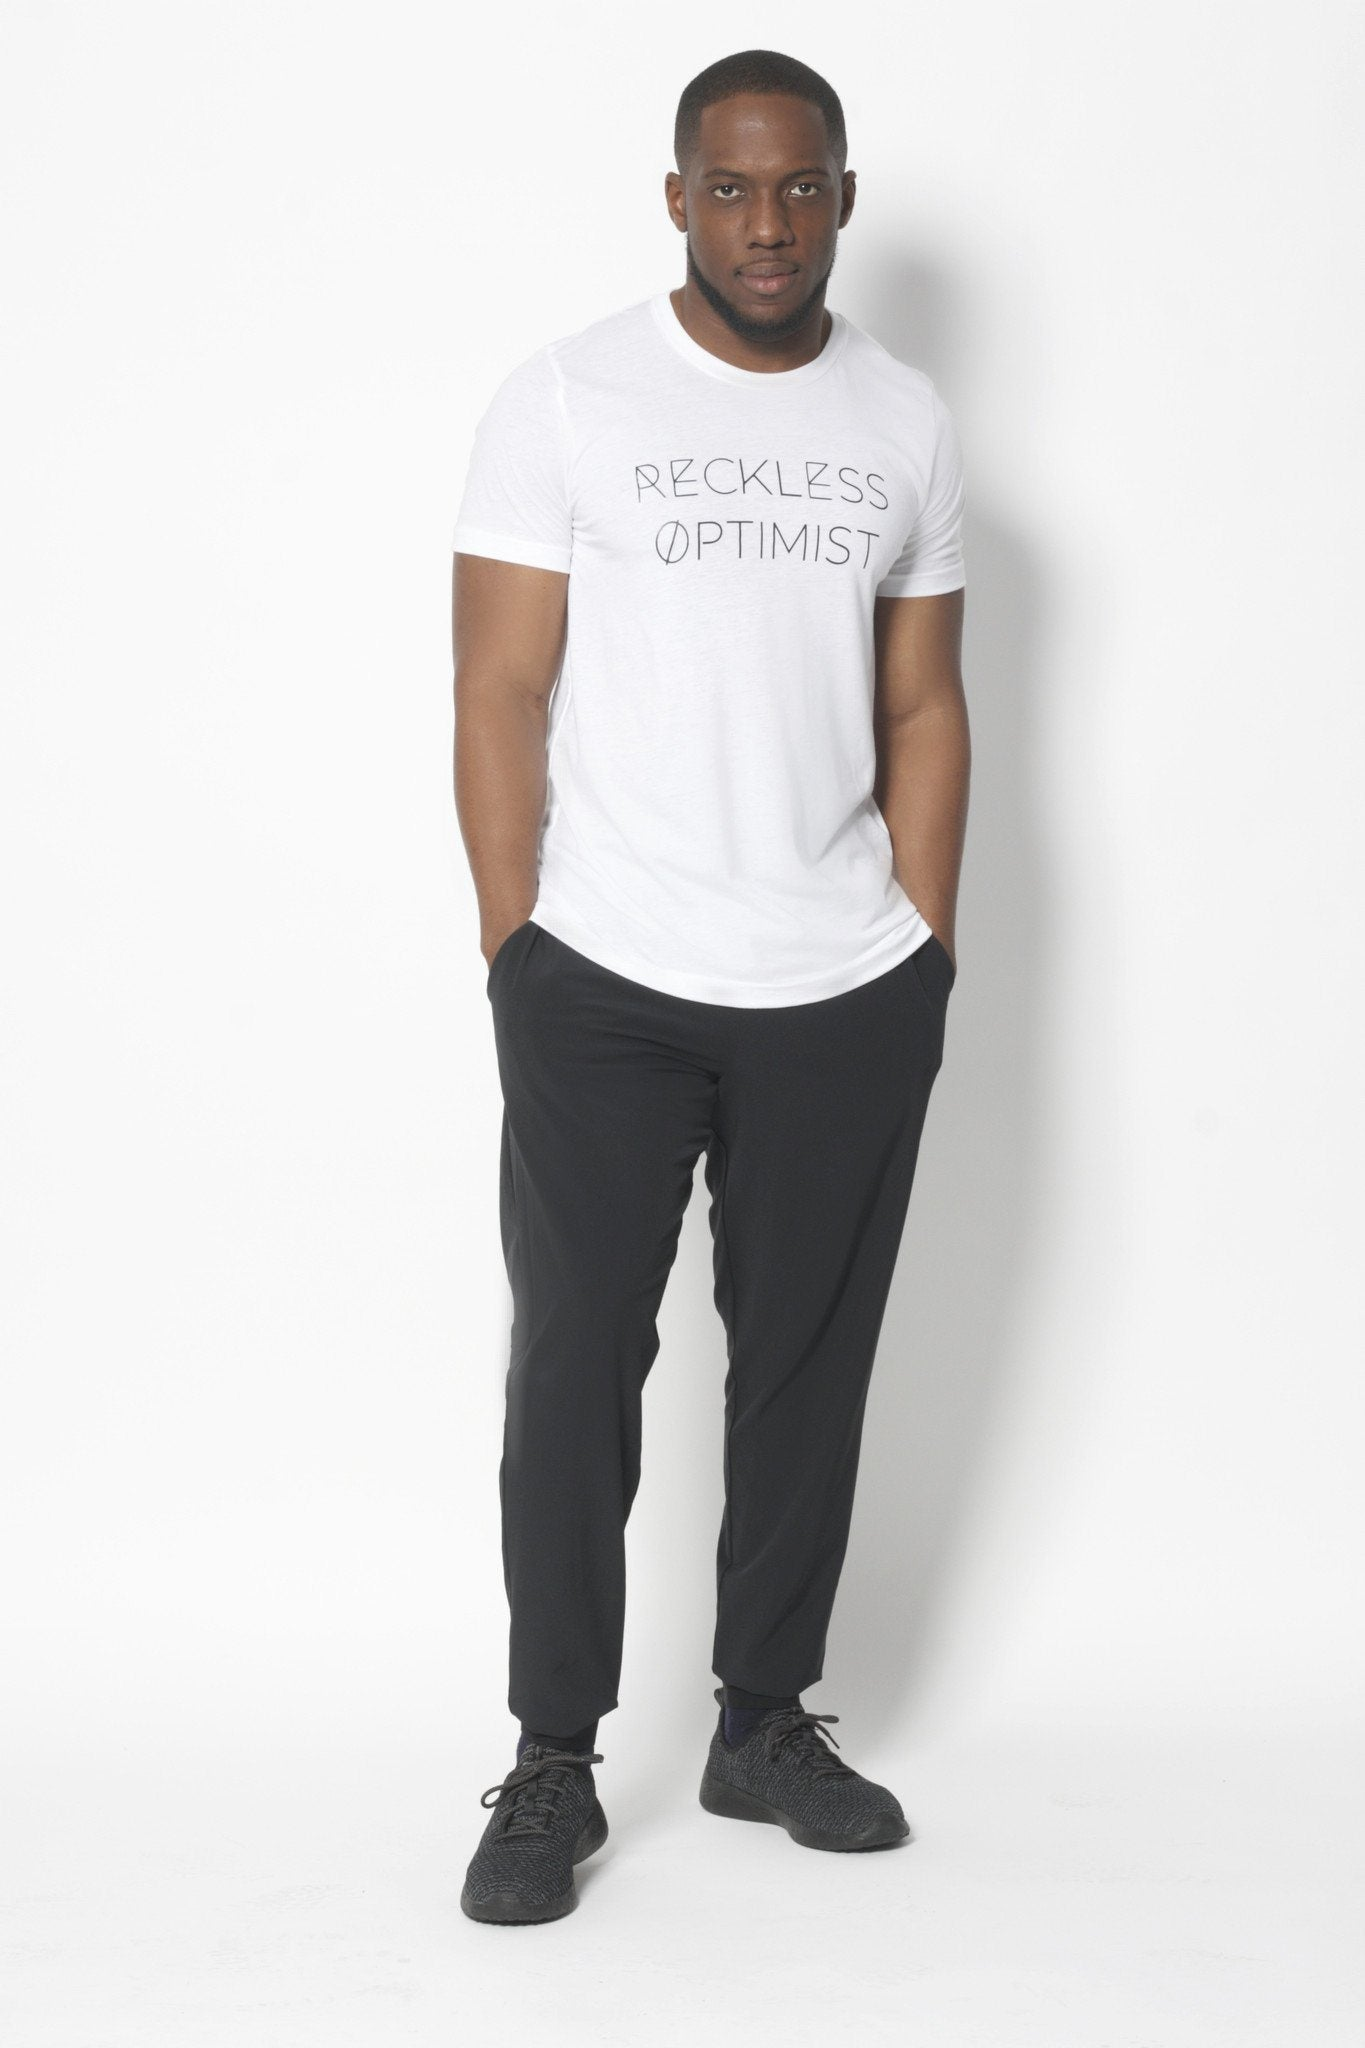 Reckless Optimist T-Shirt - Vibrate Higher